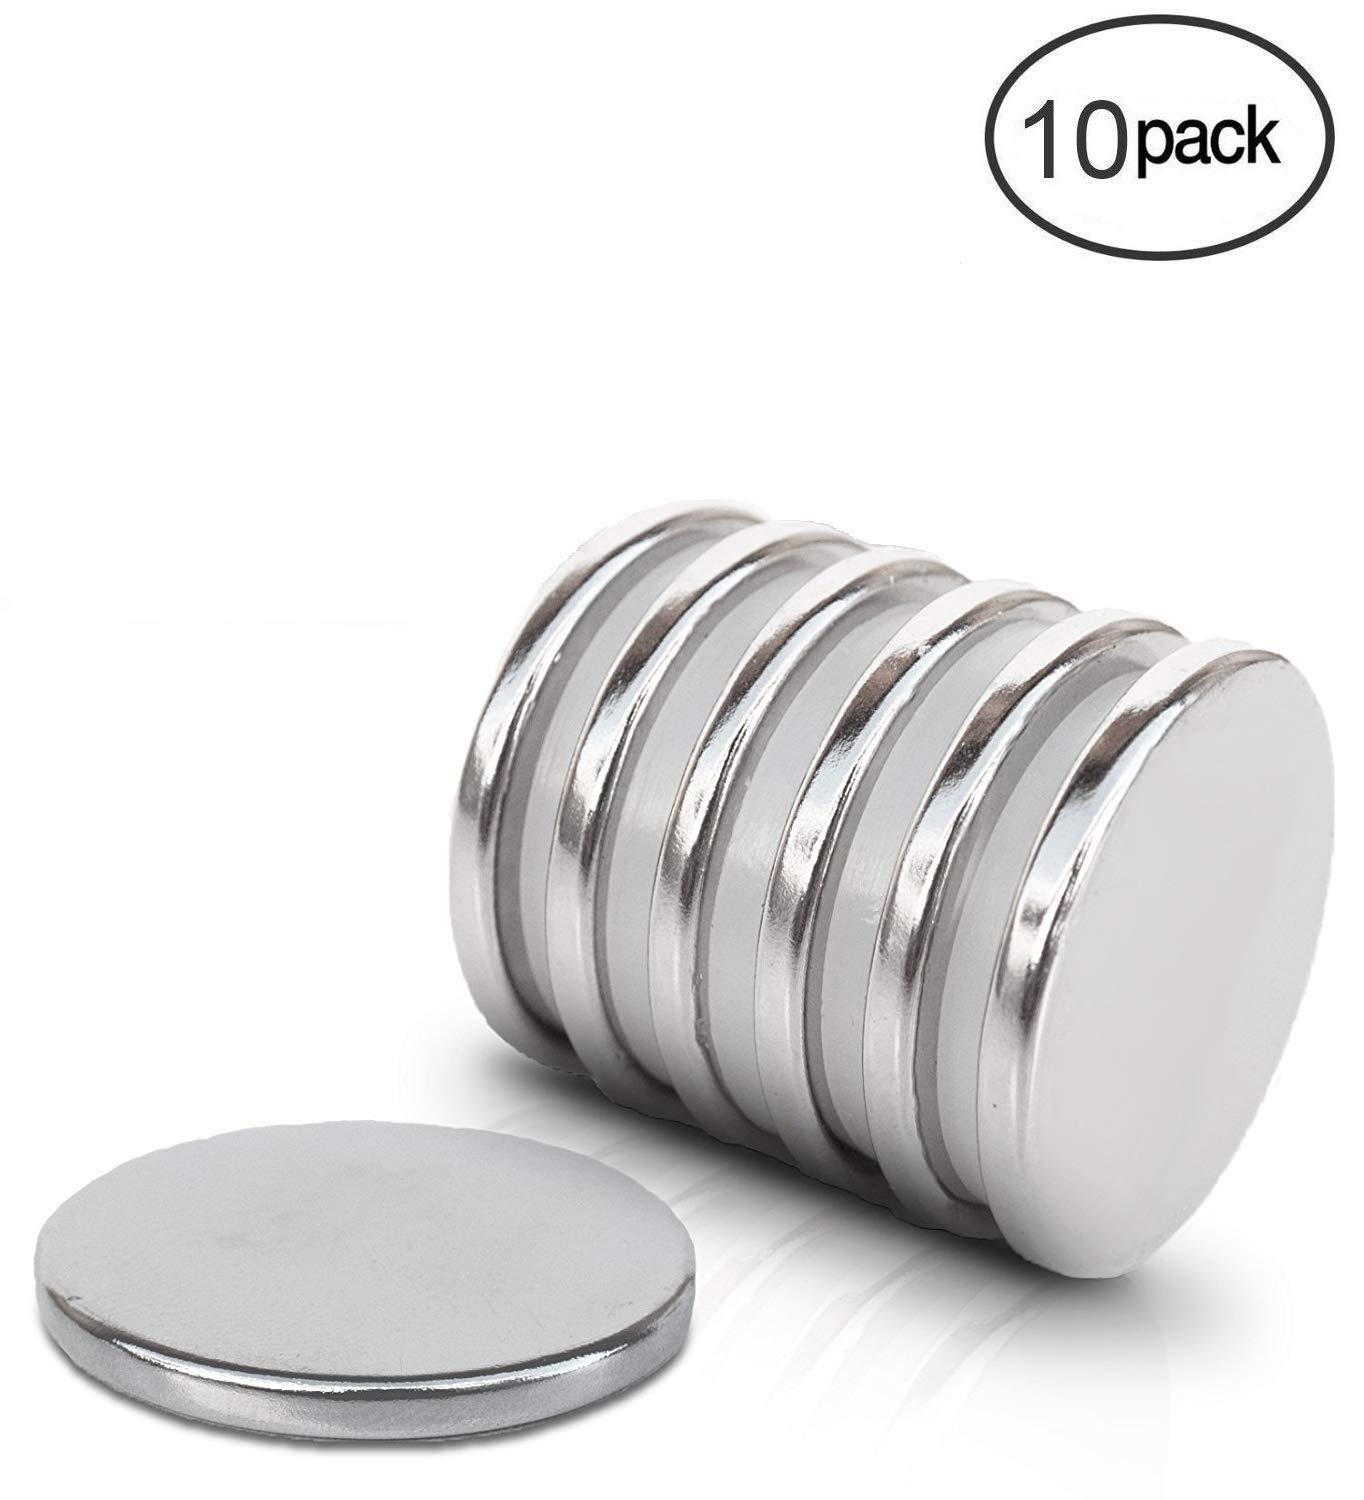 Pack of 10 Magnet Expert 20mm dia x 3mm thick N42 Neodymium Magnet 4.6kg Pull